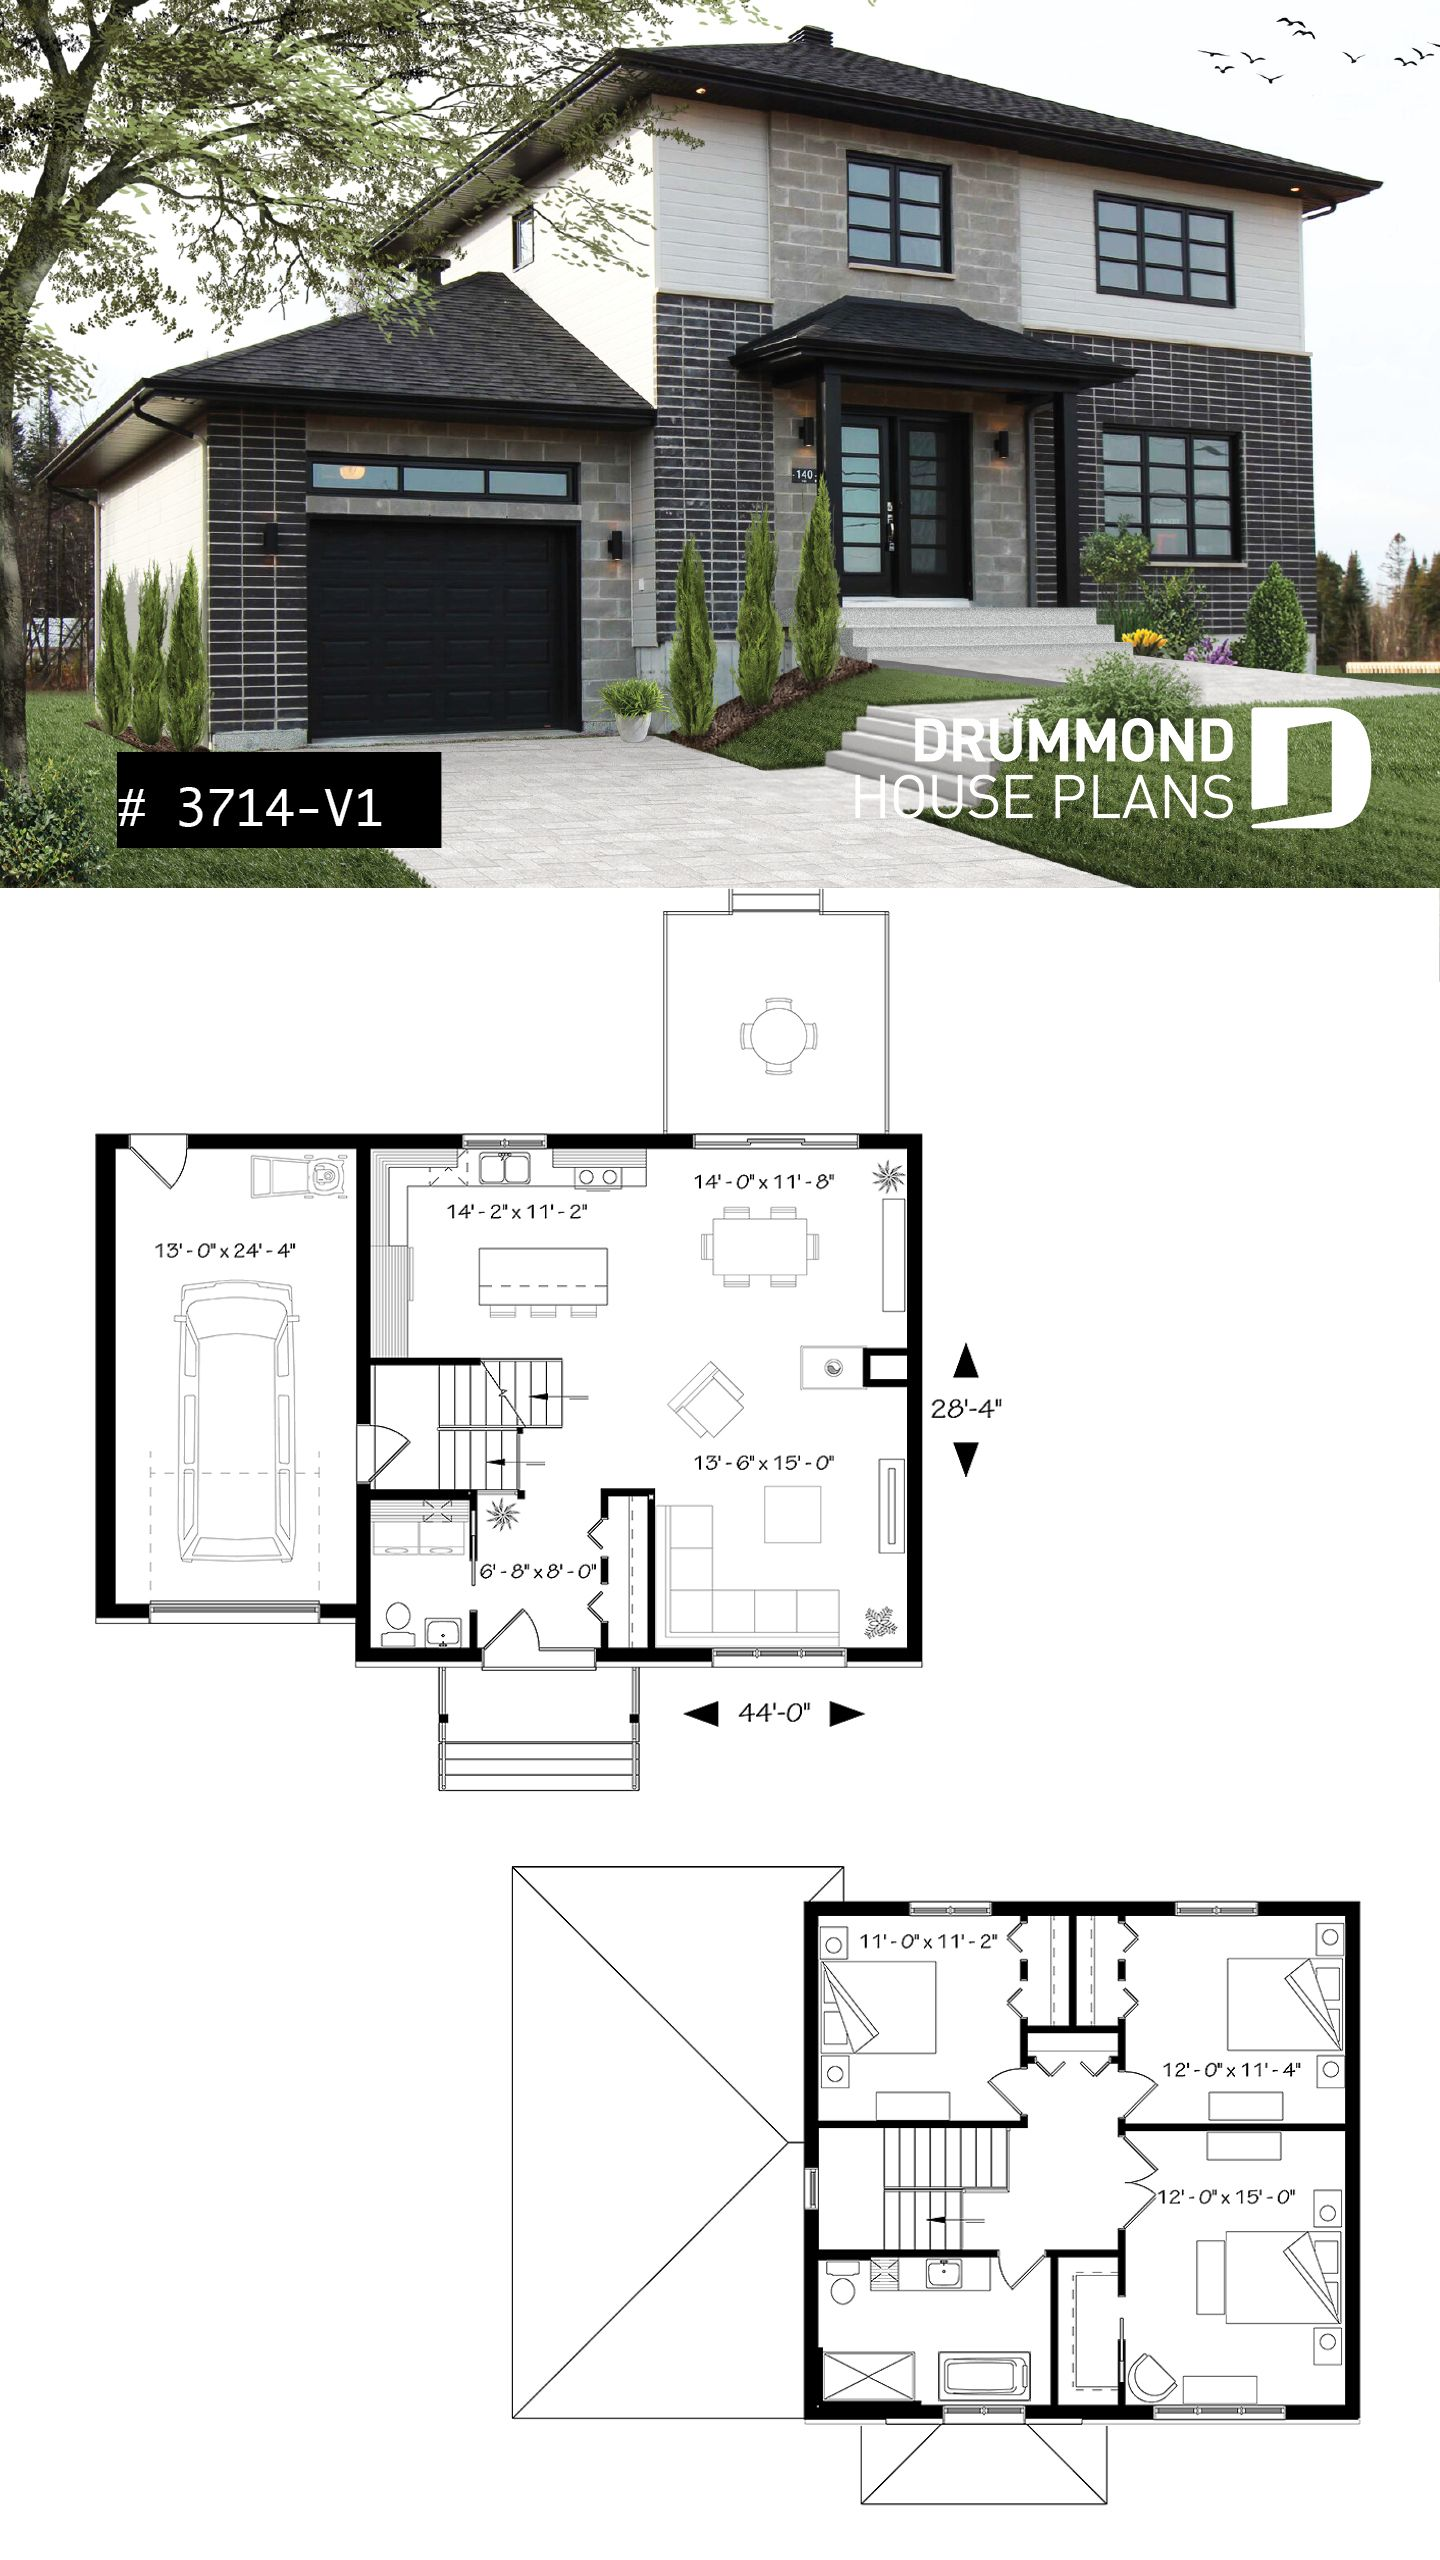 Discover The Plan 3714 V1 Altair 2 Which Will Please You For Its 3 Bedrooms And For Its Contemporary Styles Contemporary House Plans Modern House Plans House Floor Plans